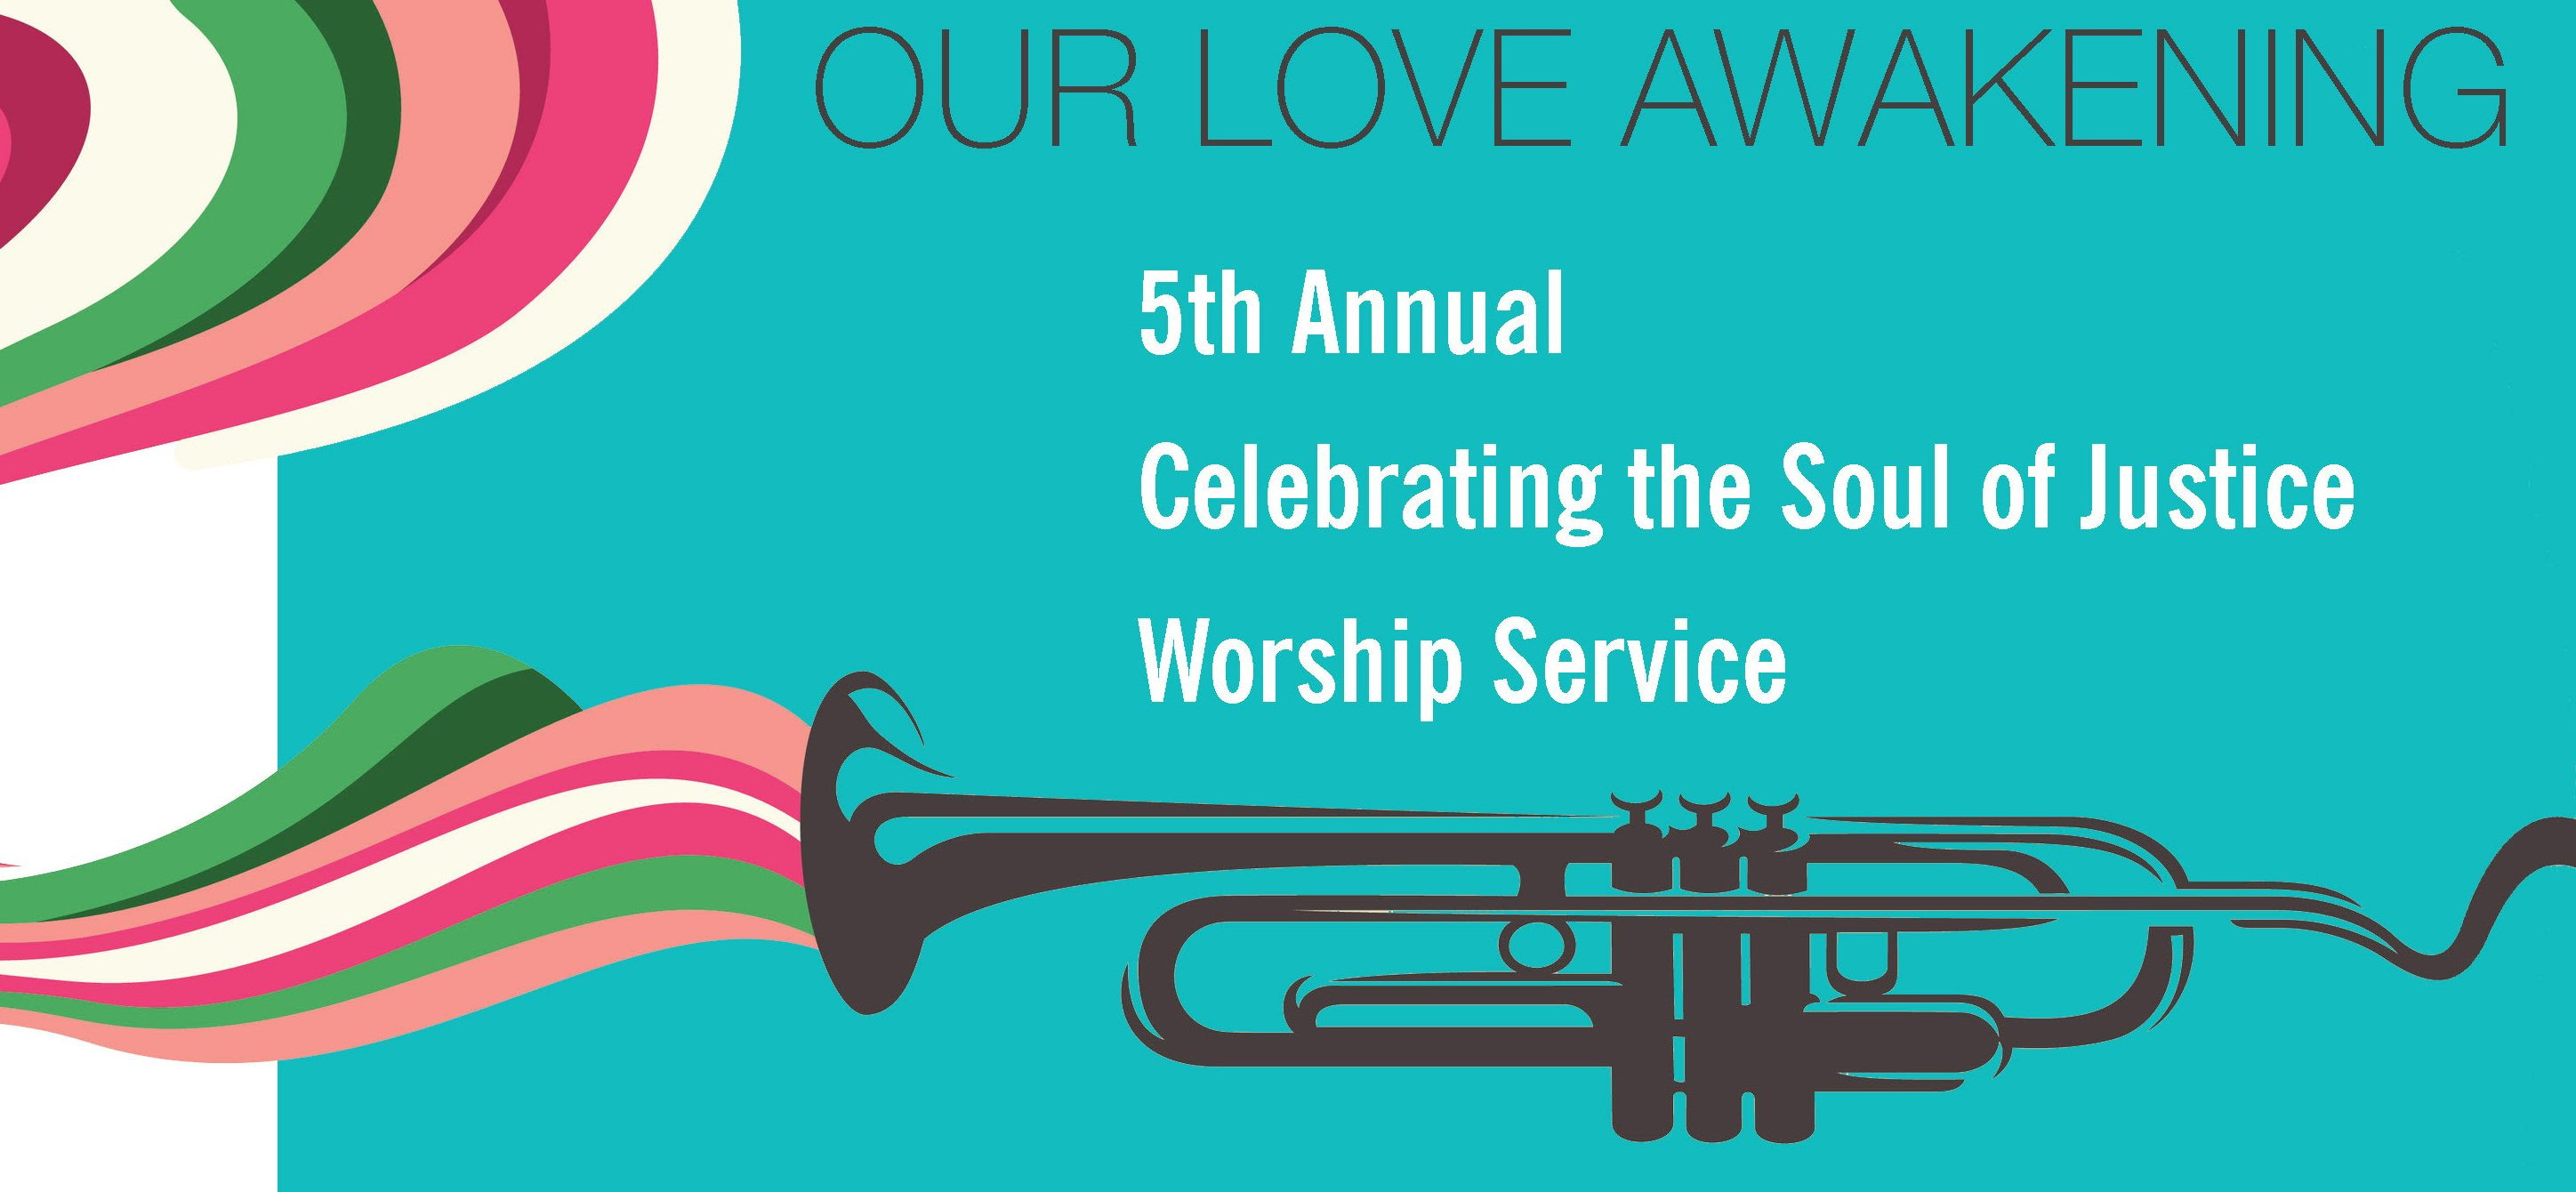 Our Love Awakening: Celebrating the Soul of Justice 2017